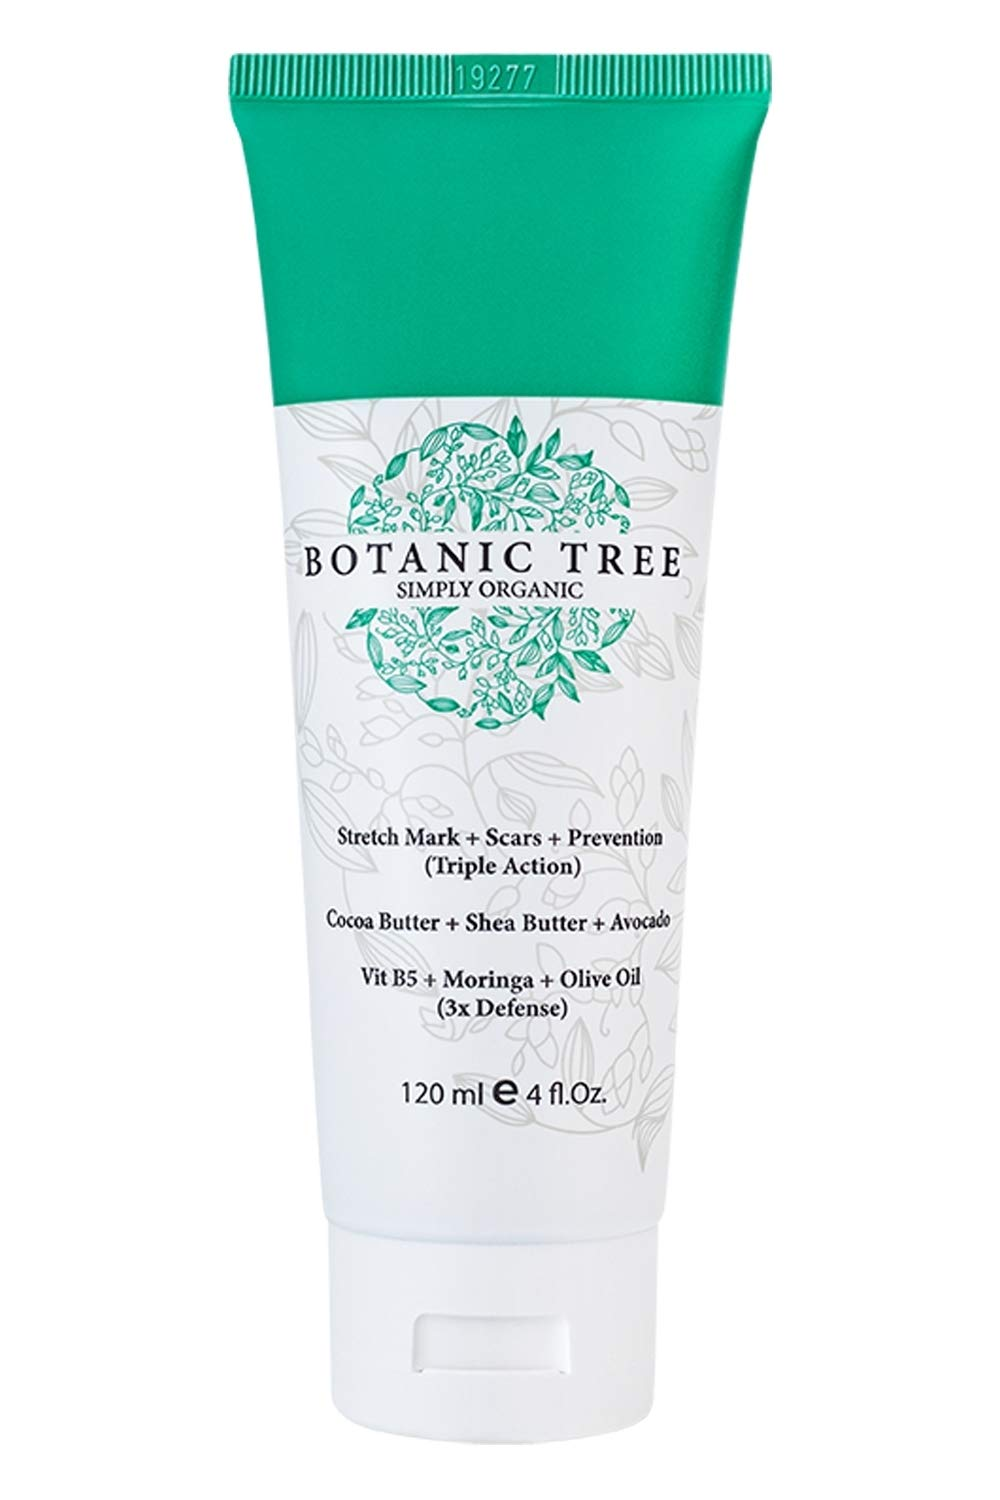 Botanic Tree Stretch Mark Remover Cream-Stretch Marks Removal Belly Butter-Organic Cocoa Butter Stretch Mark Cream For Pregnancy-Stretch Mark Cream Lotion w/Avocado-Scar Cream for Women And Men.